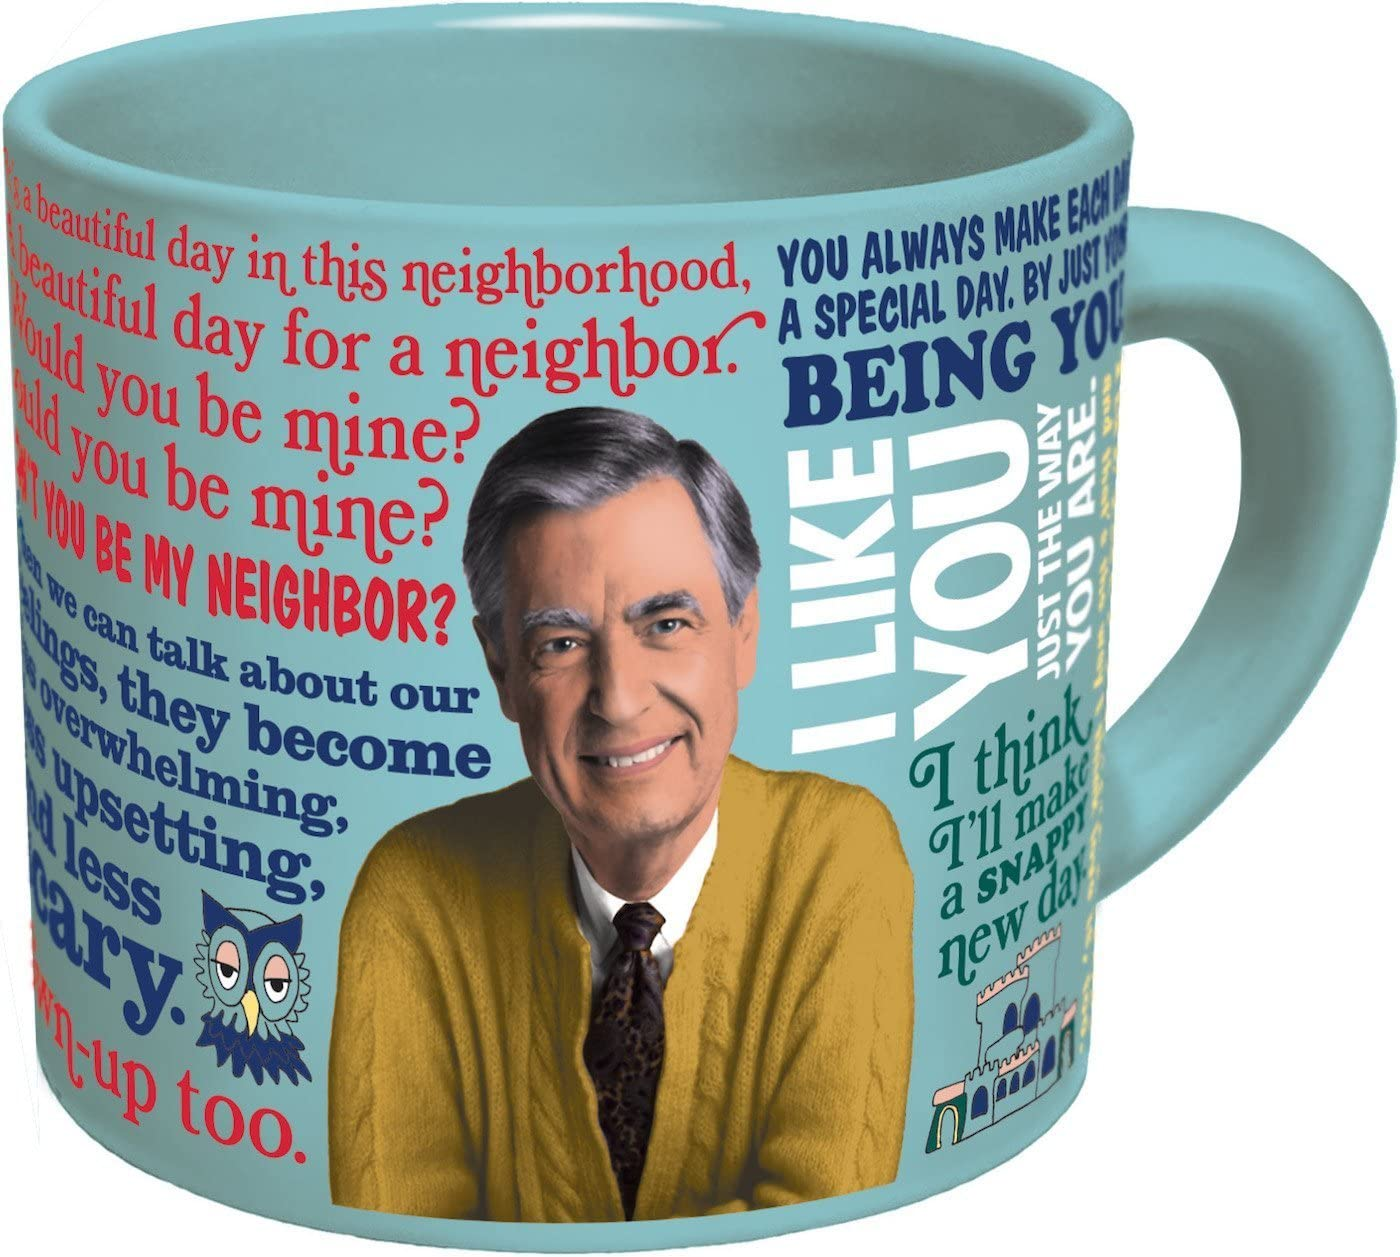 Image for Mister Rogers Heat Changing Coffee Mug - Add Hot Liquid and Watch Mr. Roger's Sweater Change Color - Comes in a Fun Gift Box - by The Unemployed Philosophers Guild